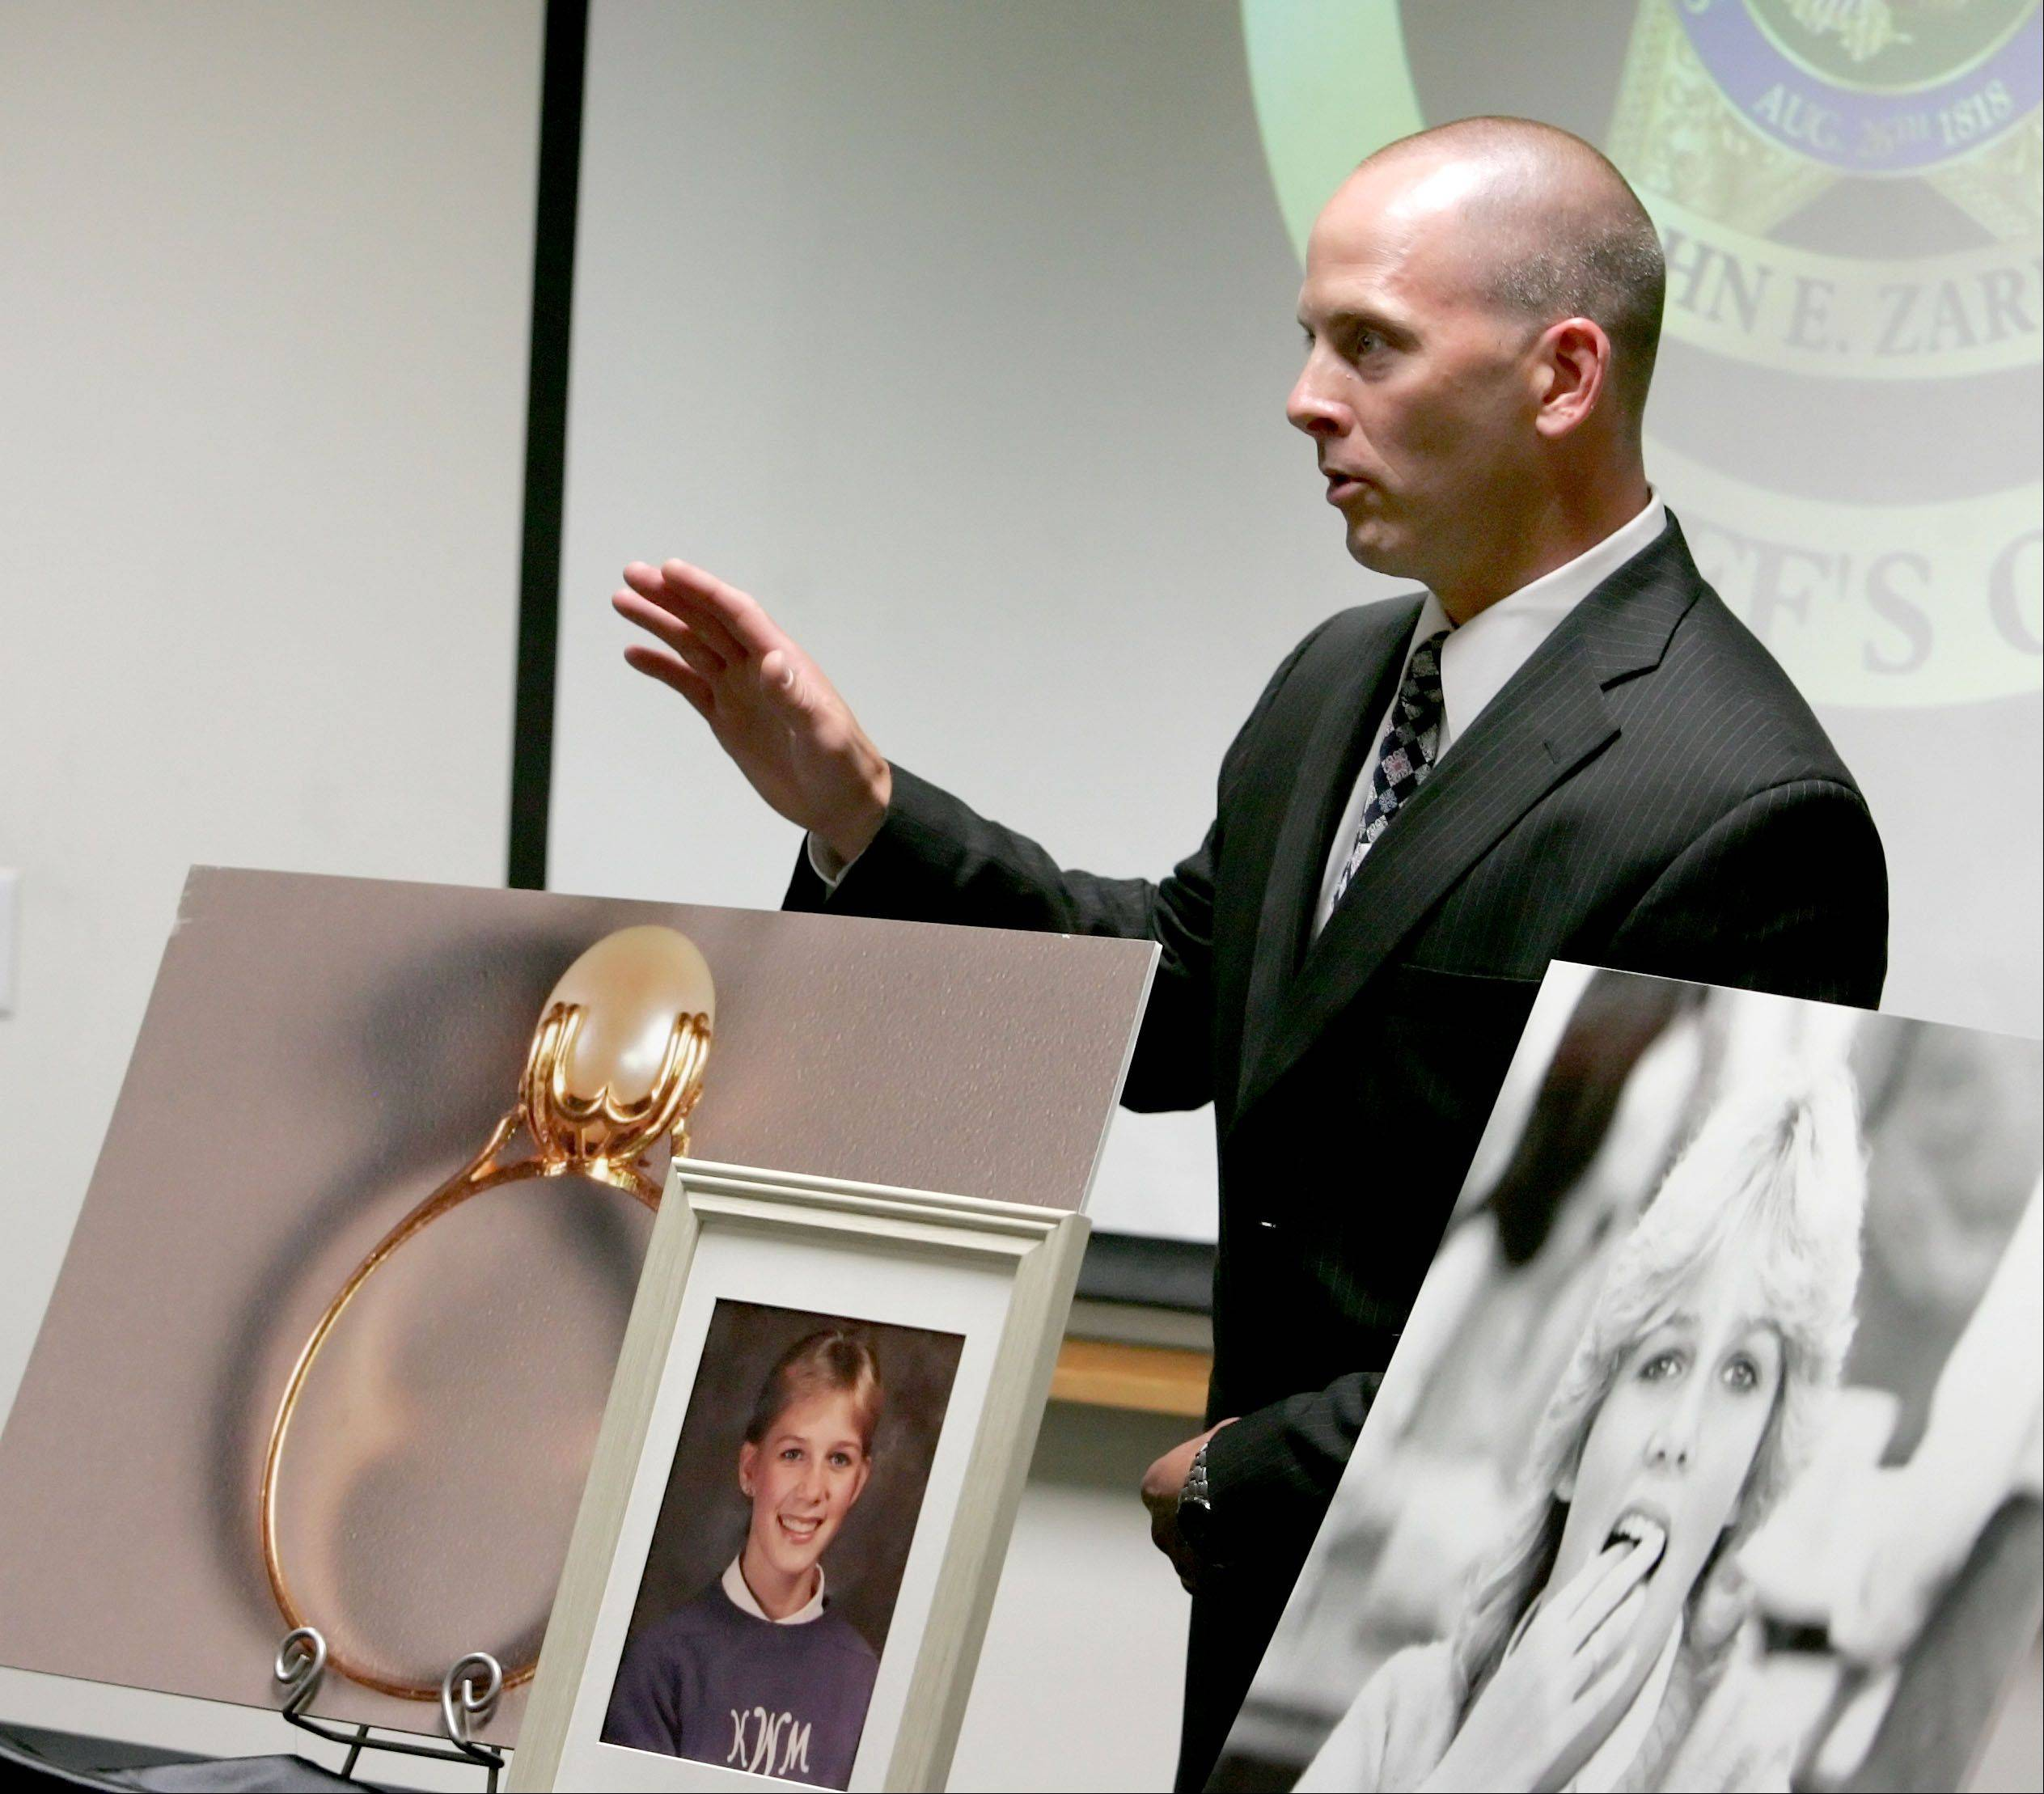 Sgt. Robert Harris reveals a photo of a ring during news conference at the DuPage County sheriff's office in Wheaton on Thursday. Kristy Wesselman was wearing a similar ring when she was murdered on July 21, 1985, near Glen Ellyn.